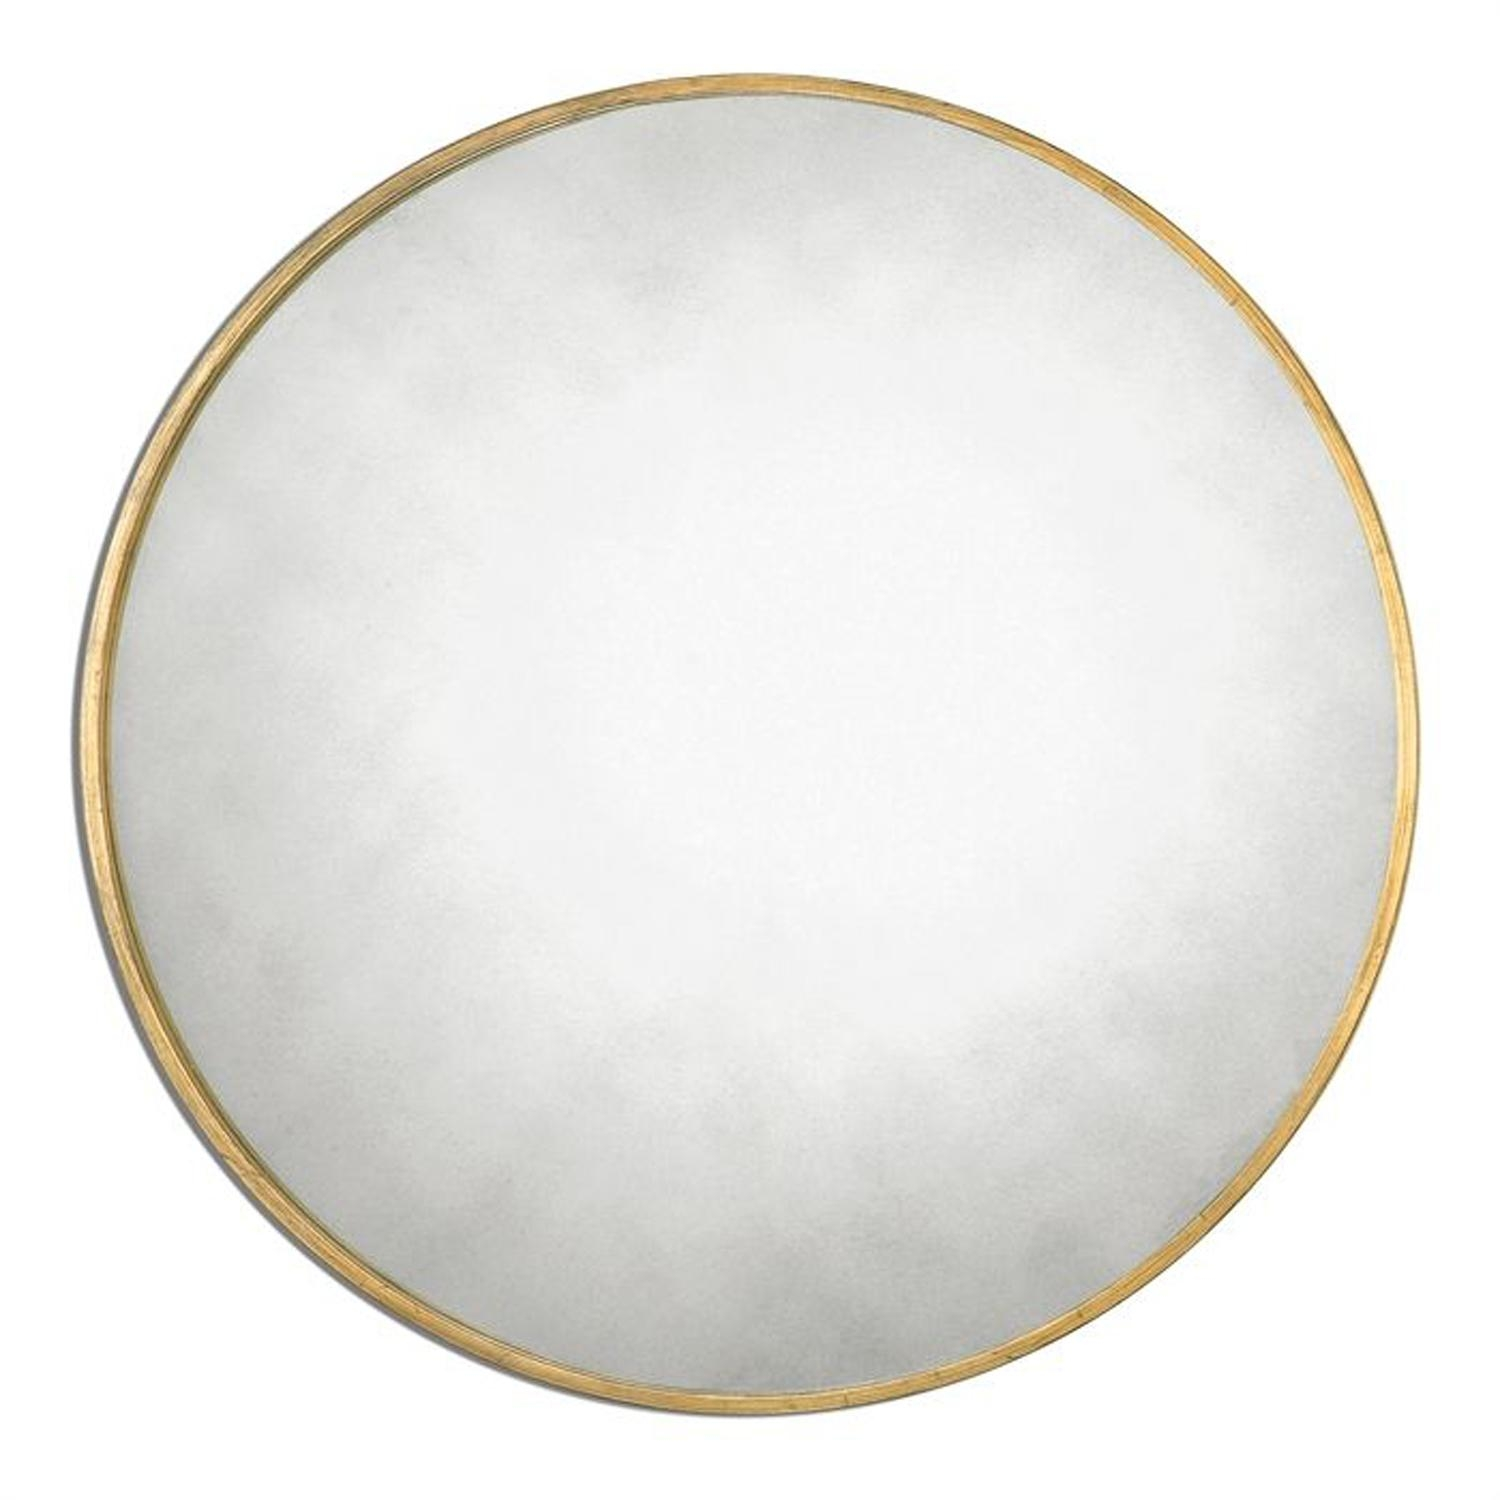 Featured Image of Large Round Gold Mirror